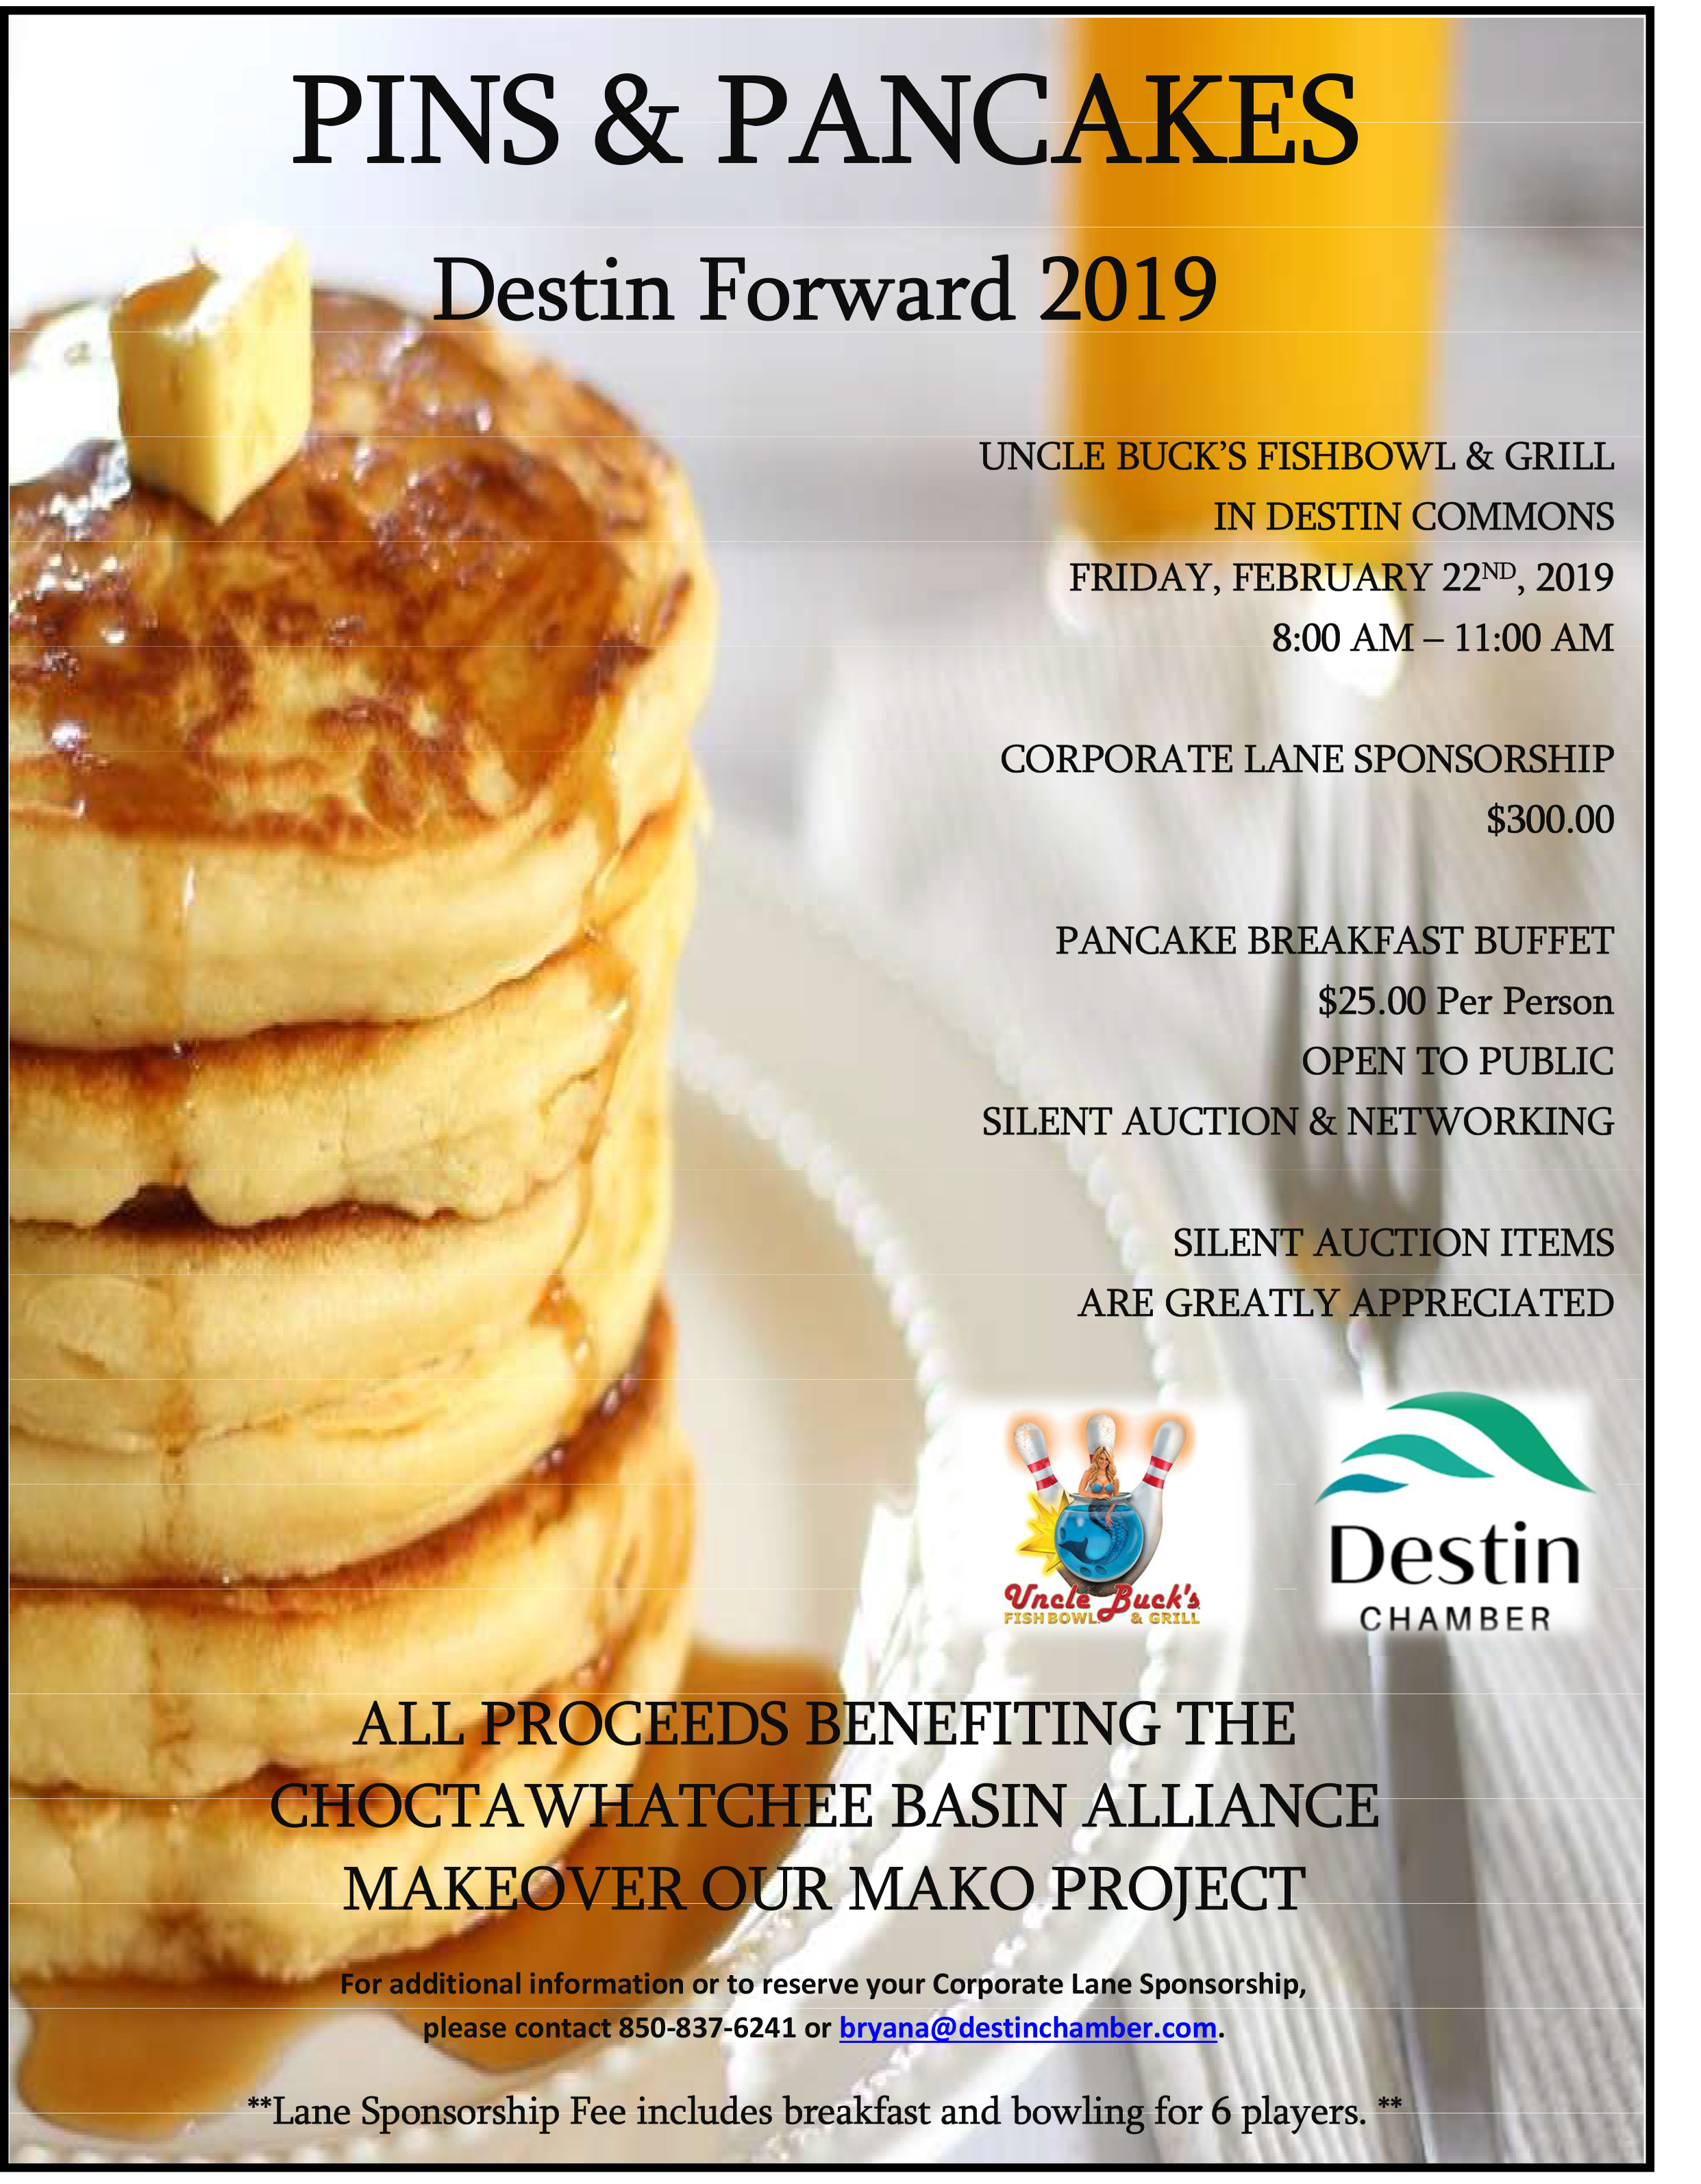 Destin Forward Pins & Pancakes 2019